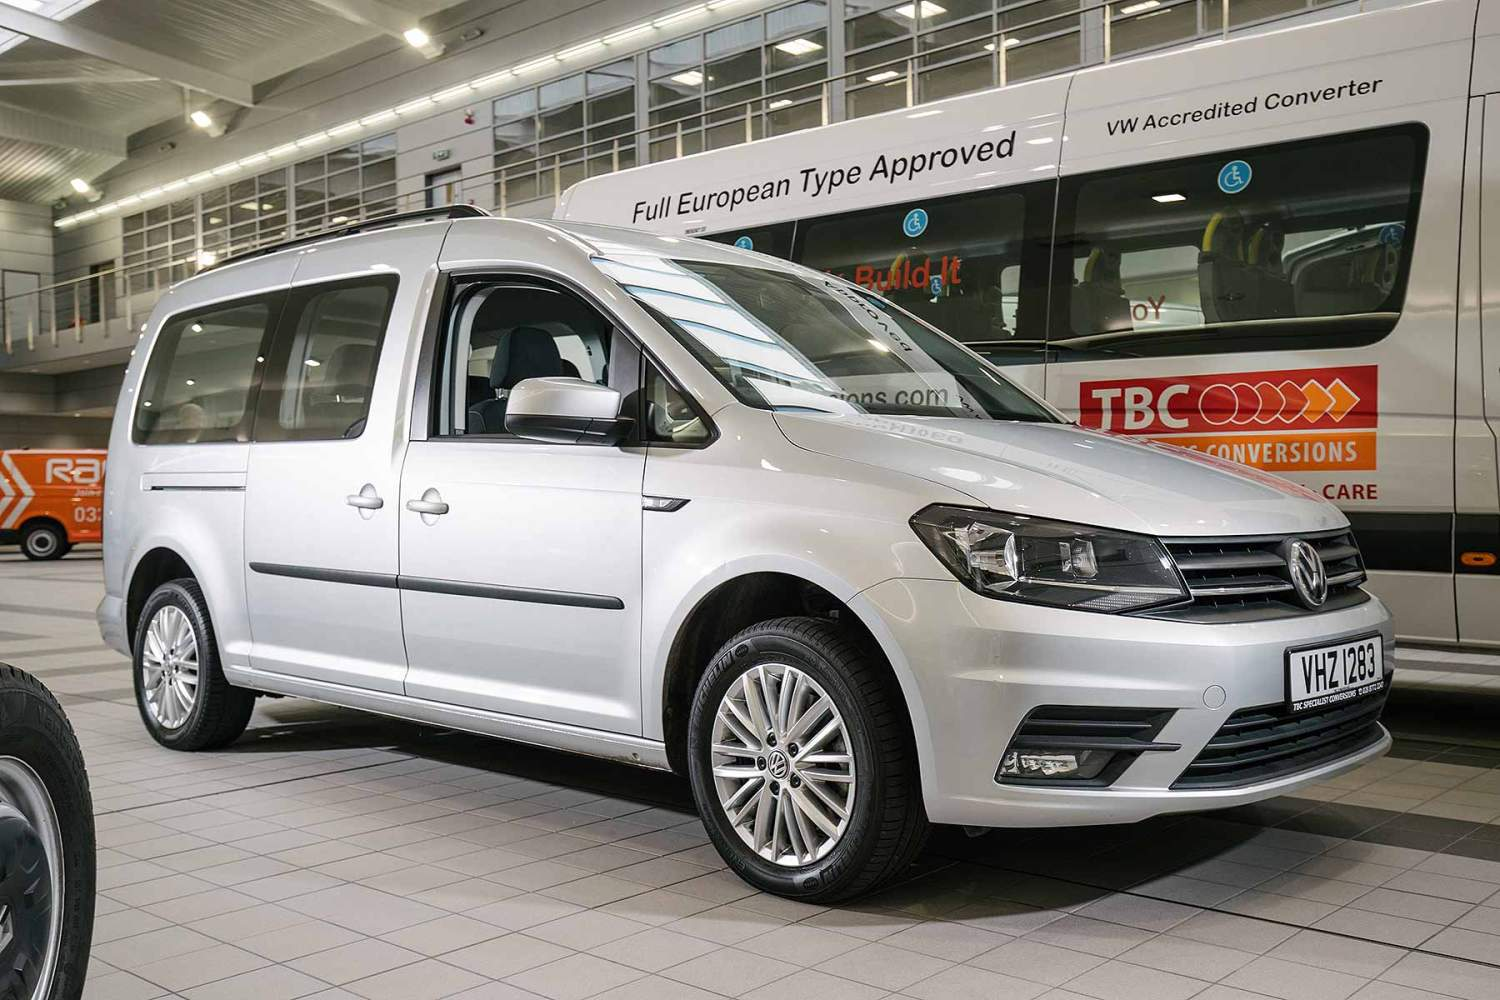 Volkswagen Caddy Life is available on some special Motability offers